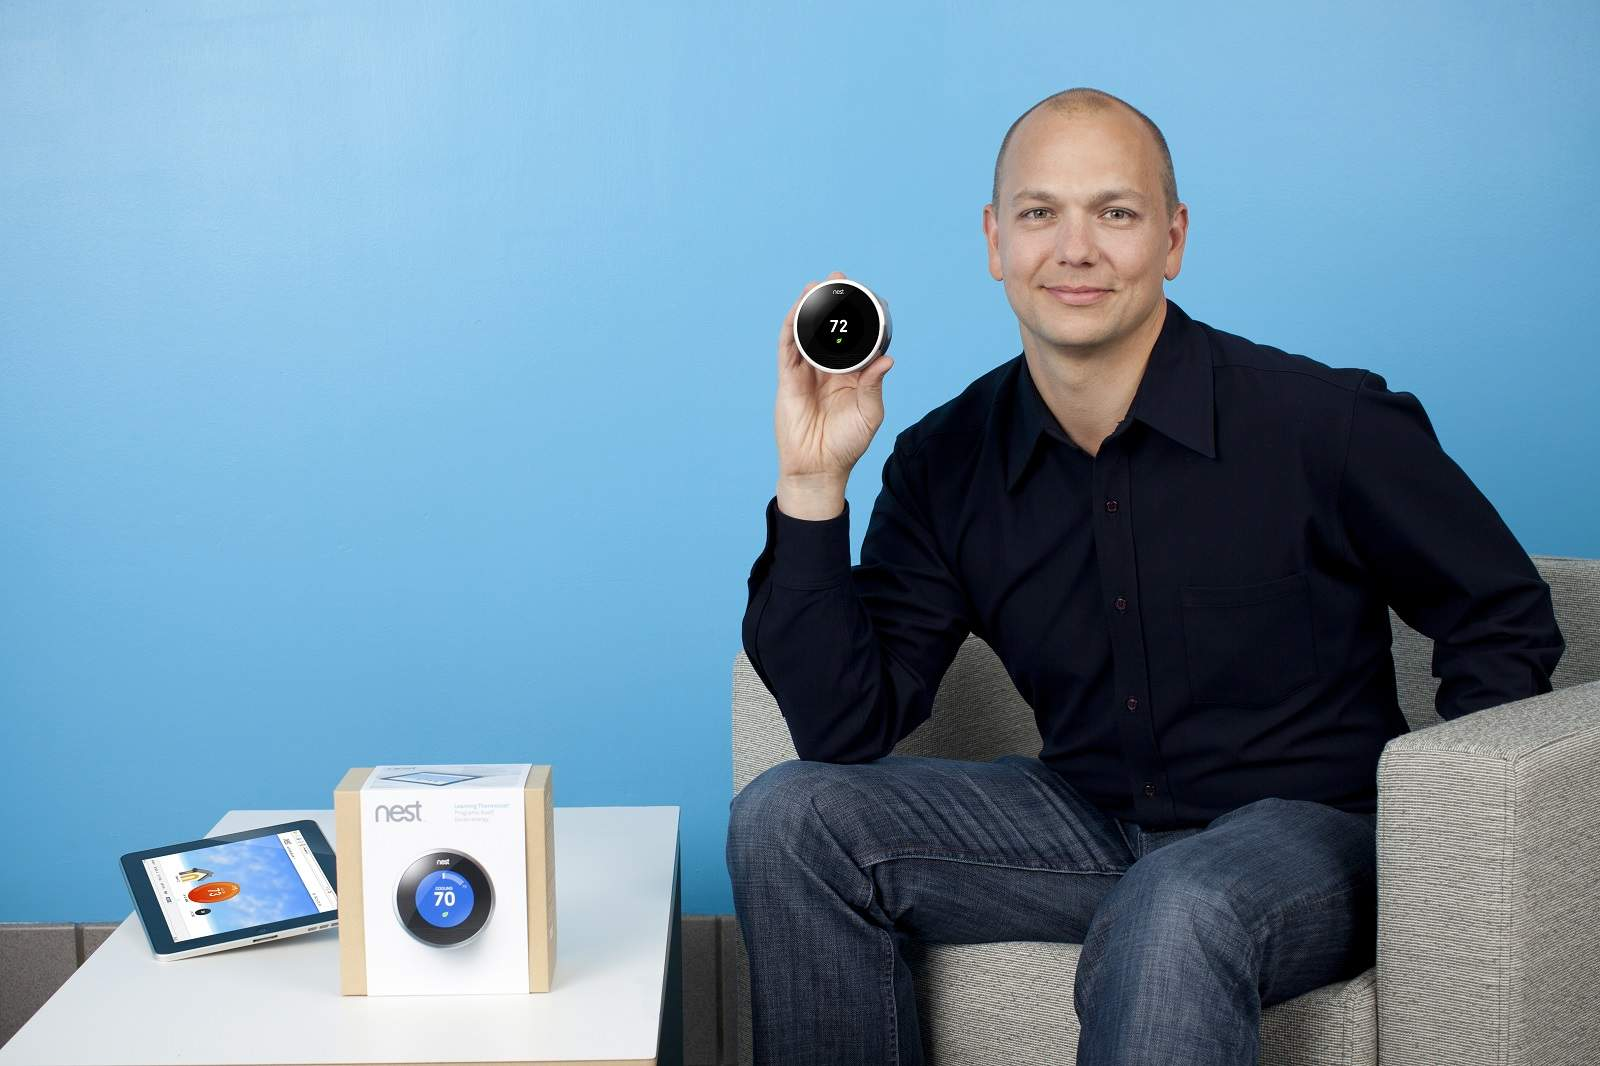 What does Tony Fadell,